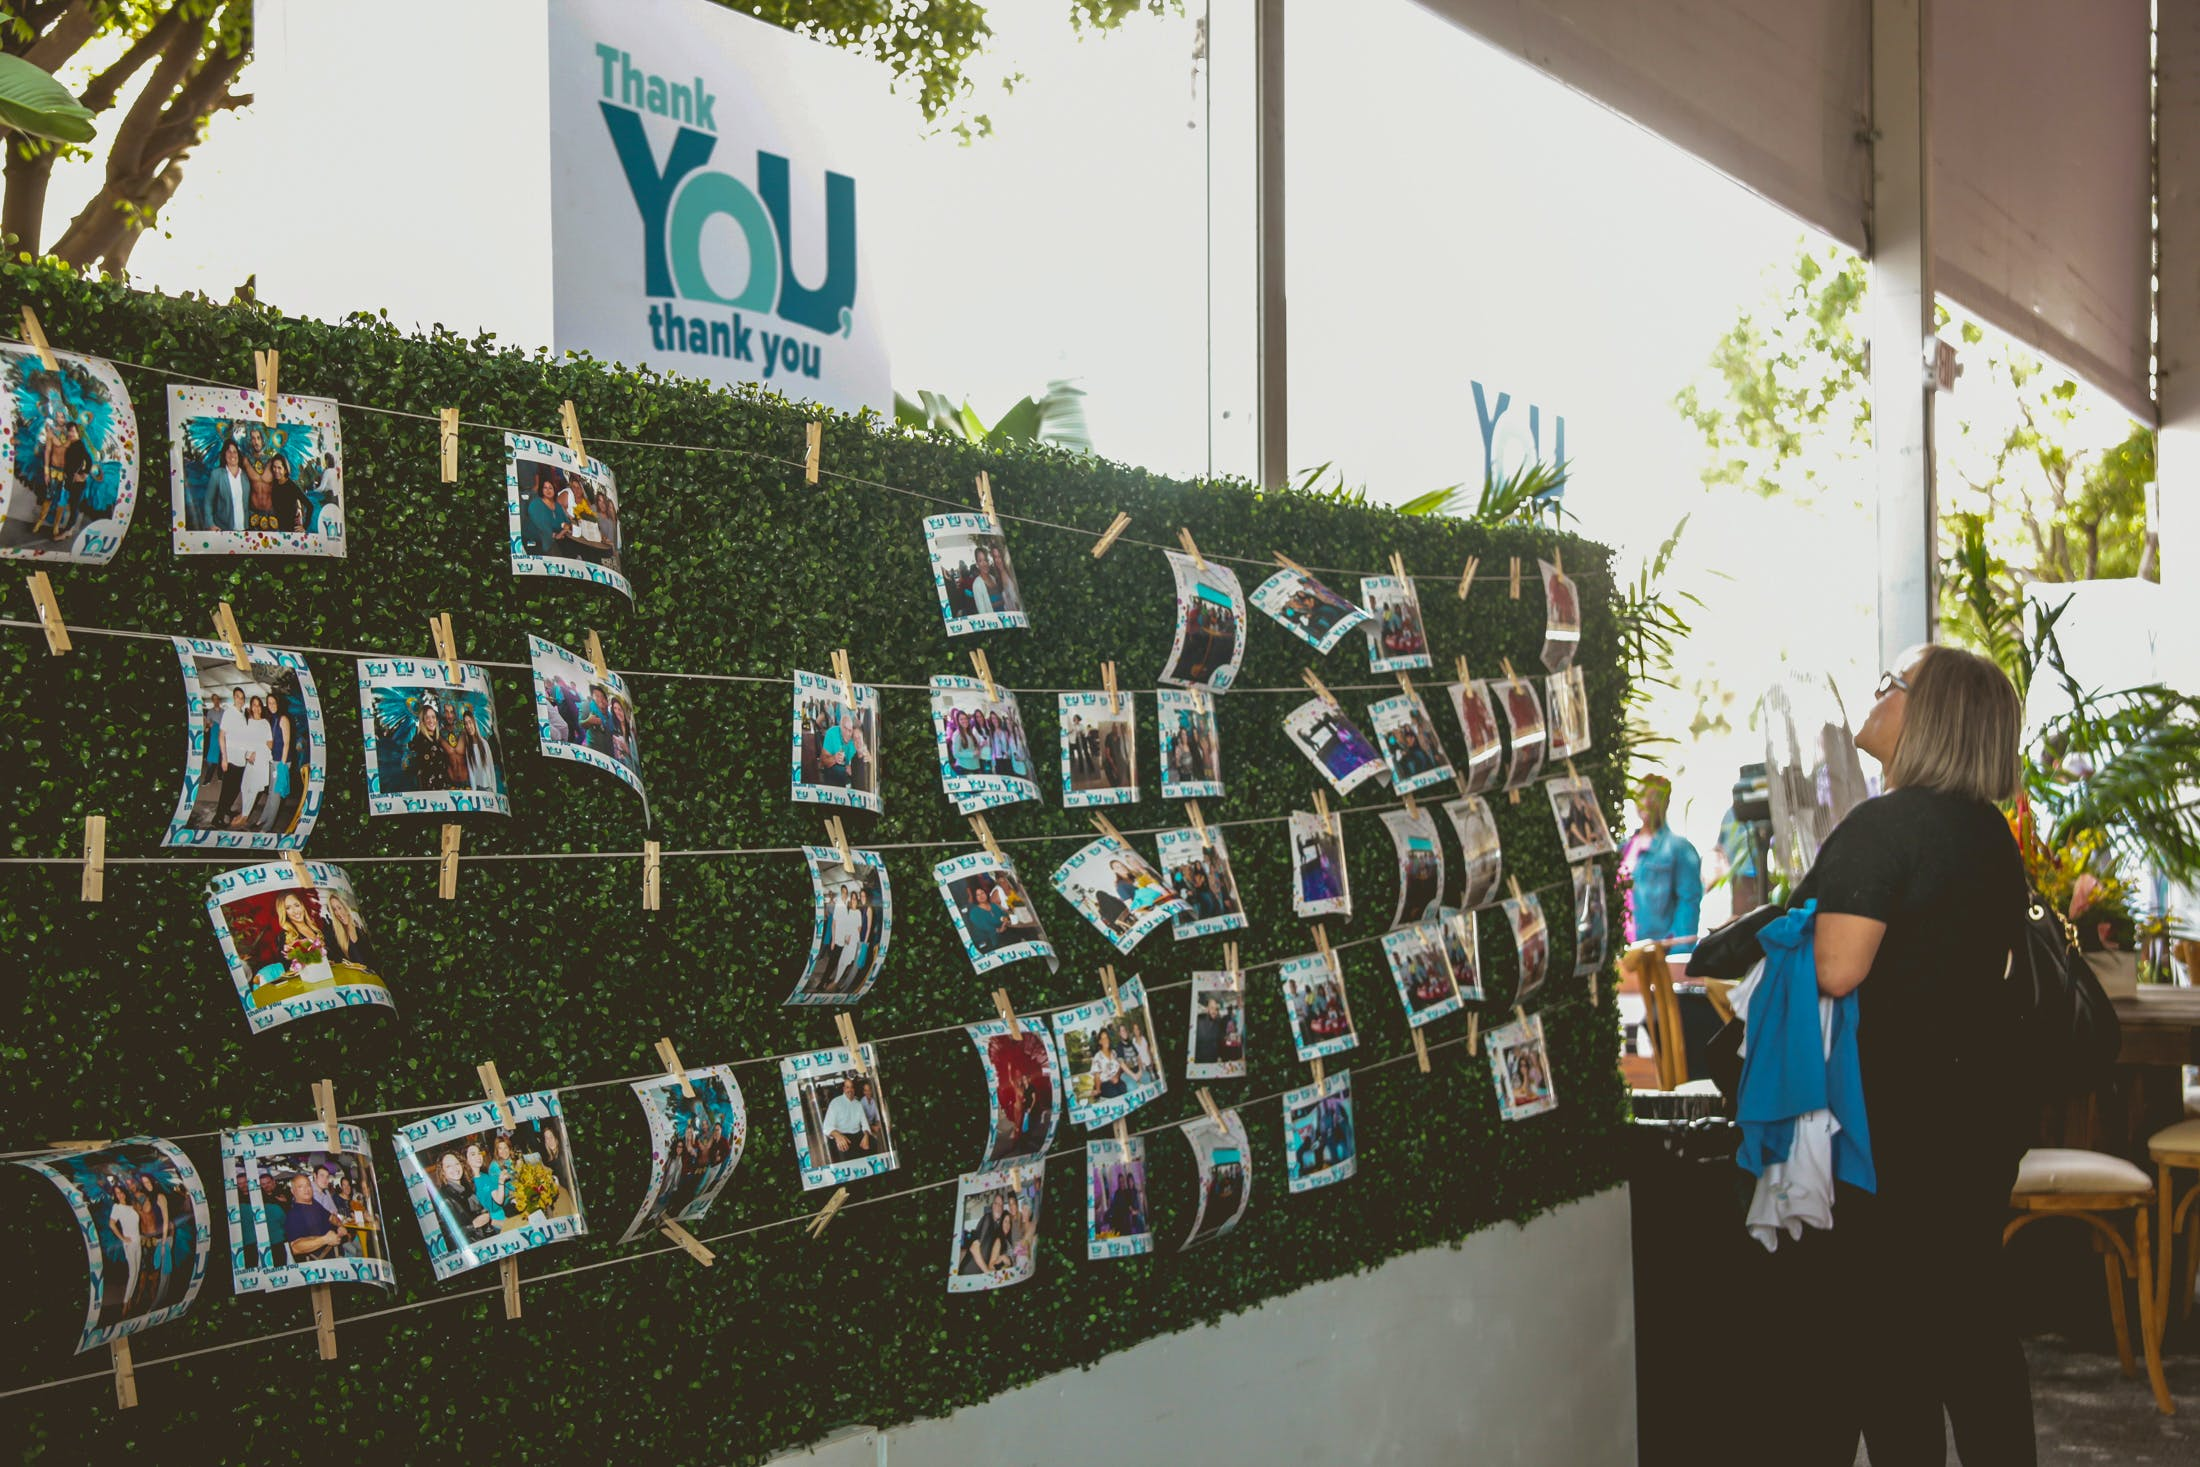 Find your photo wall covered in greenery at corporate event | PartySlate